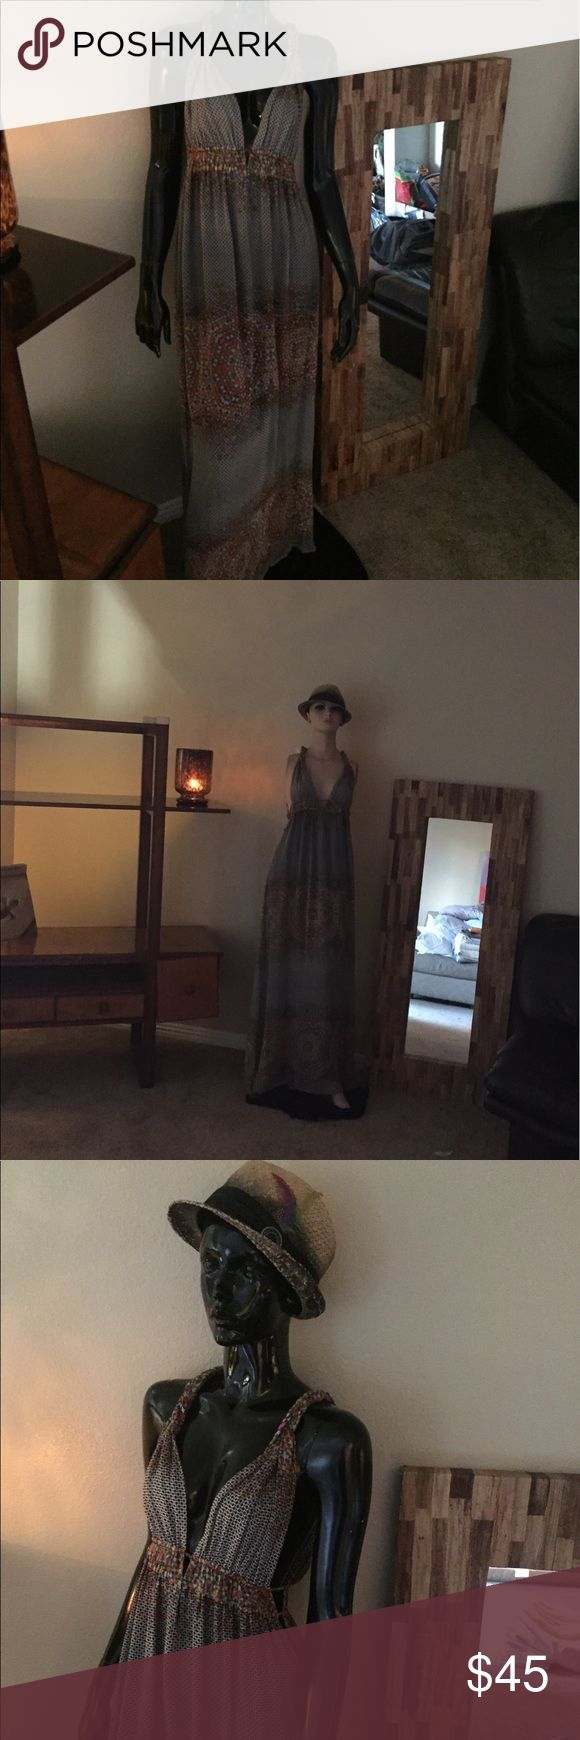 🎀🎀🎀Charlie Jade dress 🎀🎀🎀gorgeous, sexy❤️❤️ Absolutely beautiful Maxi dress...size M. Charlie Jade!!! Great colors can be worn casual or dressy❤️💯❤️ long!! Even with the hat looks amazing! Sandals or heels even flip flops. charlie jade Dresses Maxi